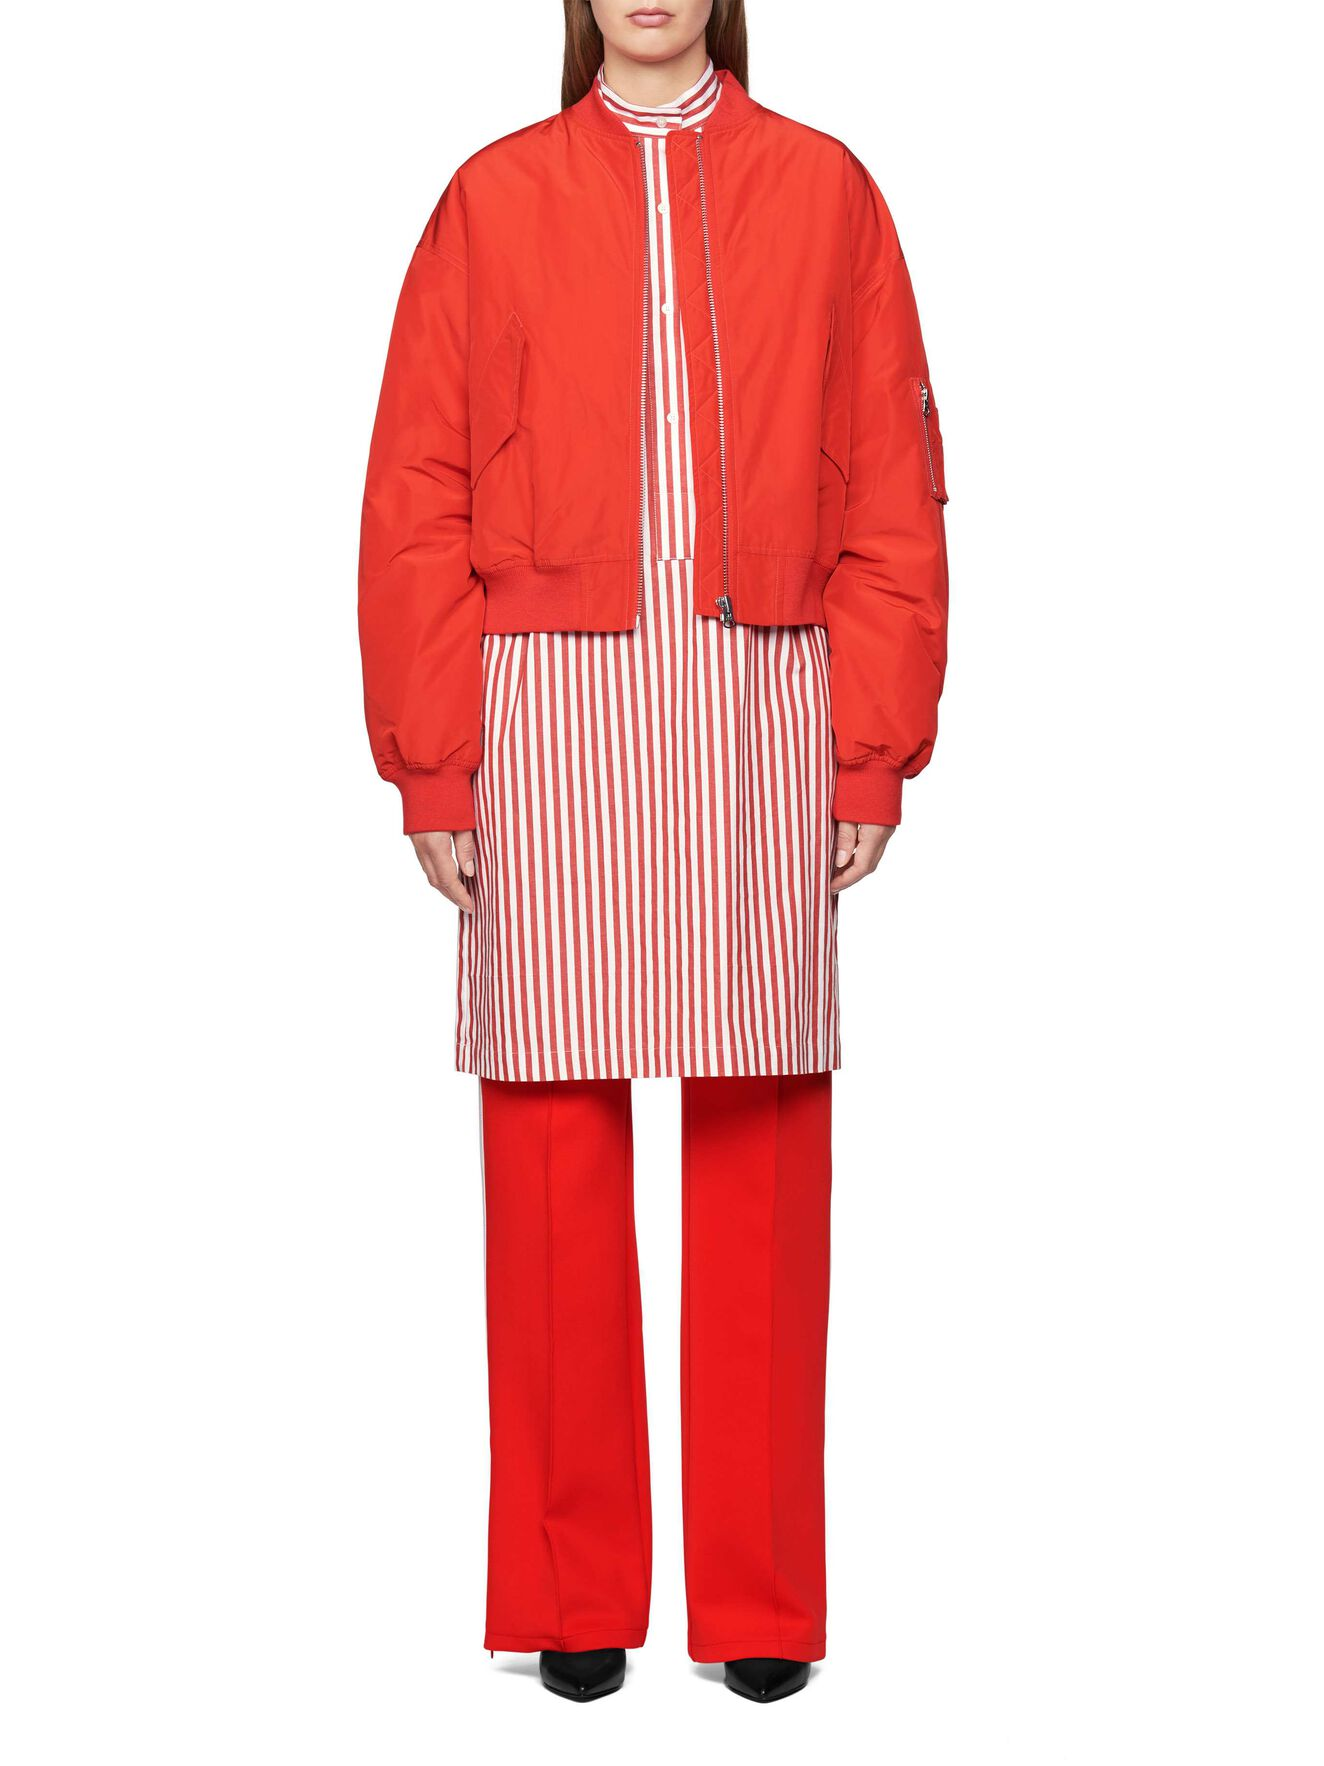 Radio Track Pants in Valiant Poppy from Tiger of Sweden